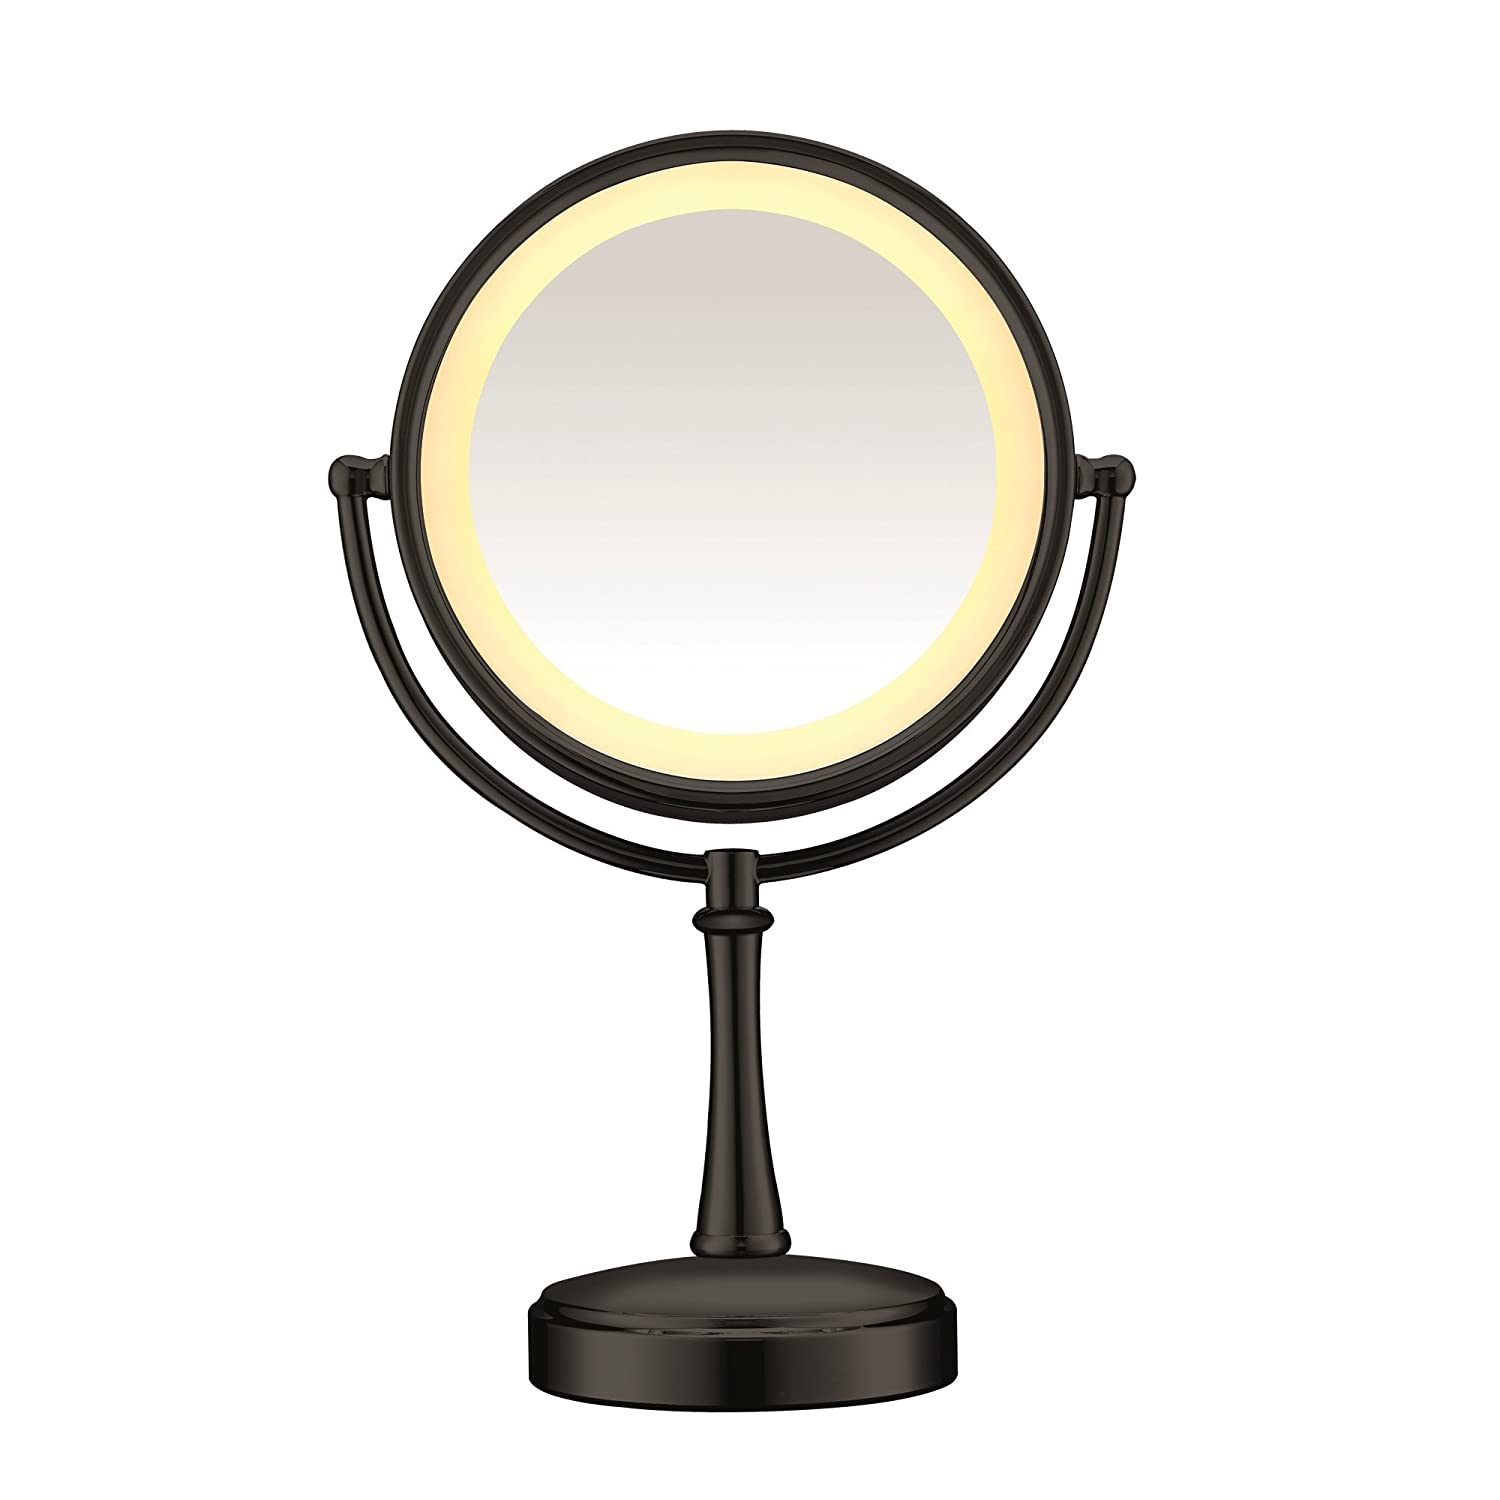 vanity makeup mirror exquisite with fresh wall interior lighted xplrvr led lights